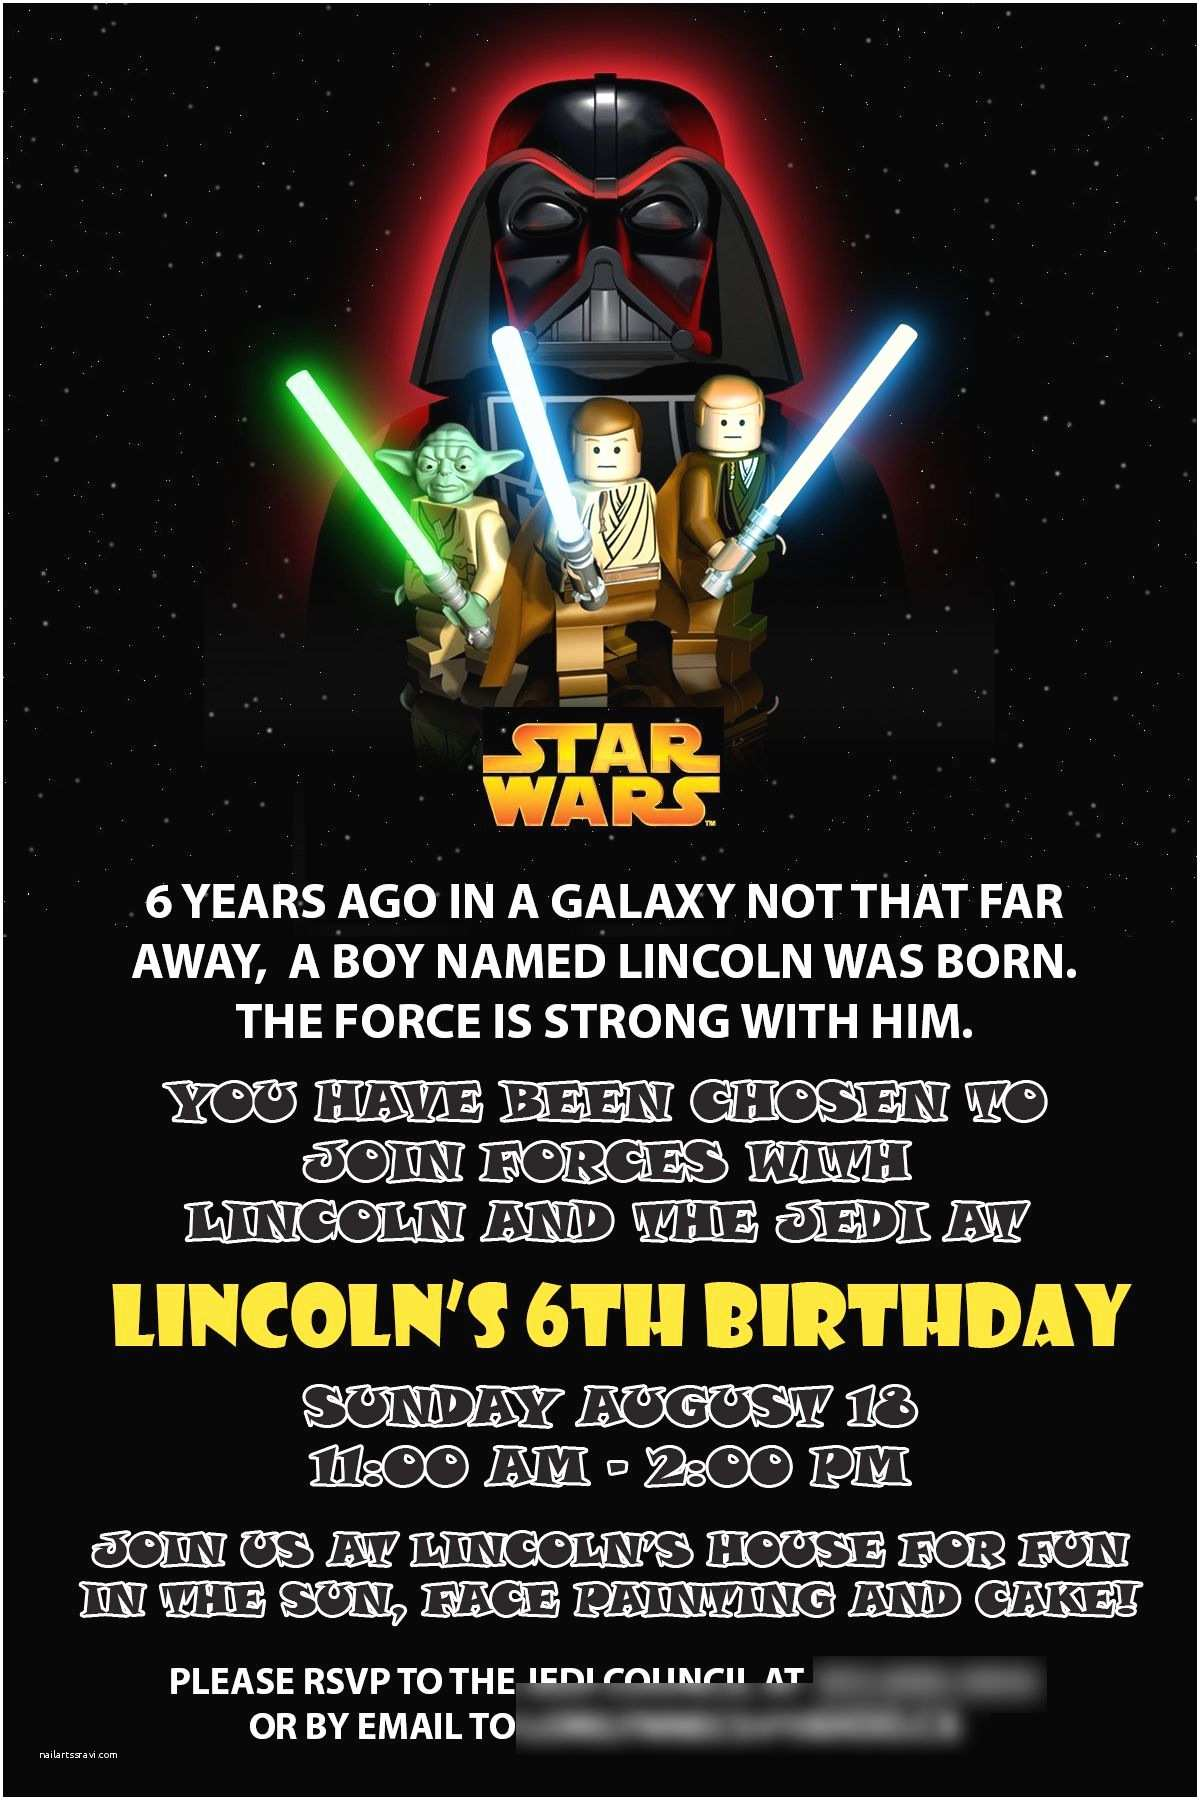 Star Wars Birthday Party Invitations Starwars Birthday Invitation Birthdays